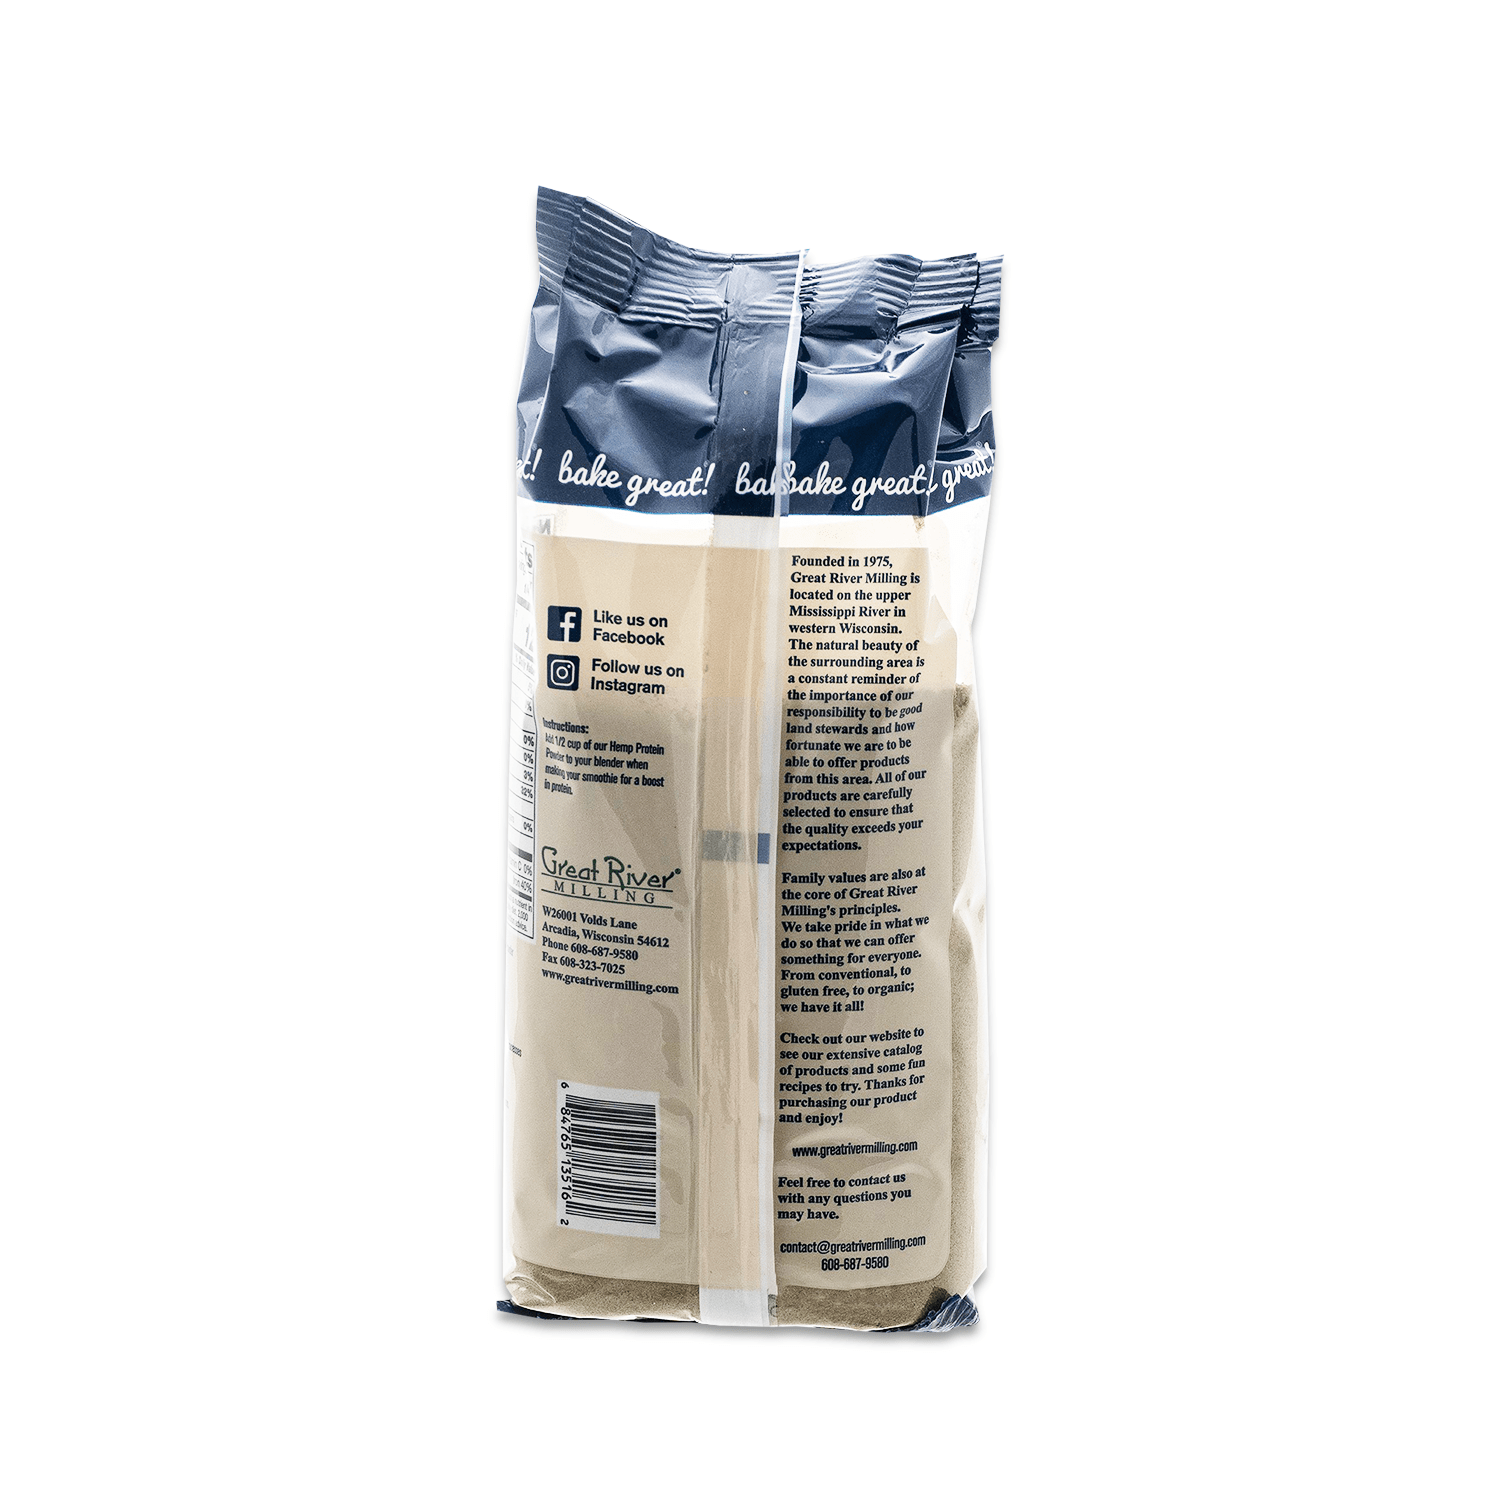 Great River Milling Hemp Protein Powder Back